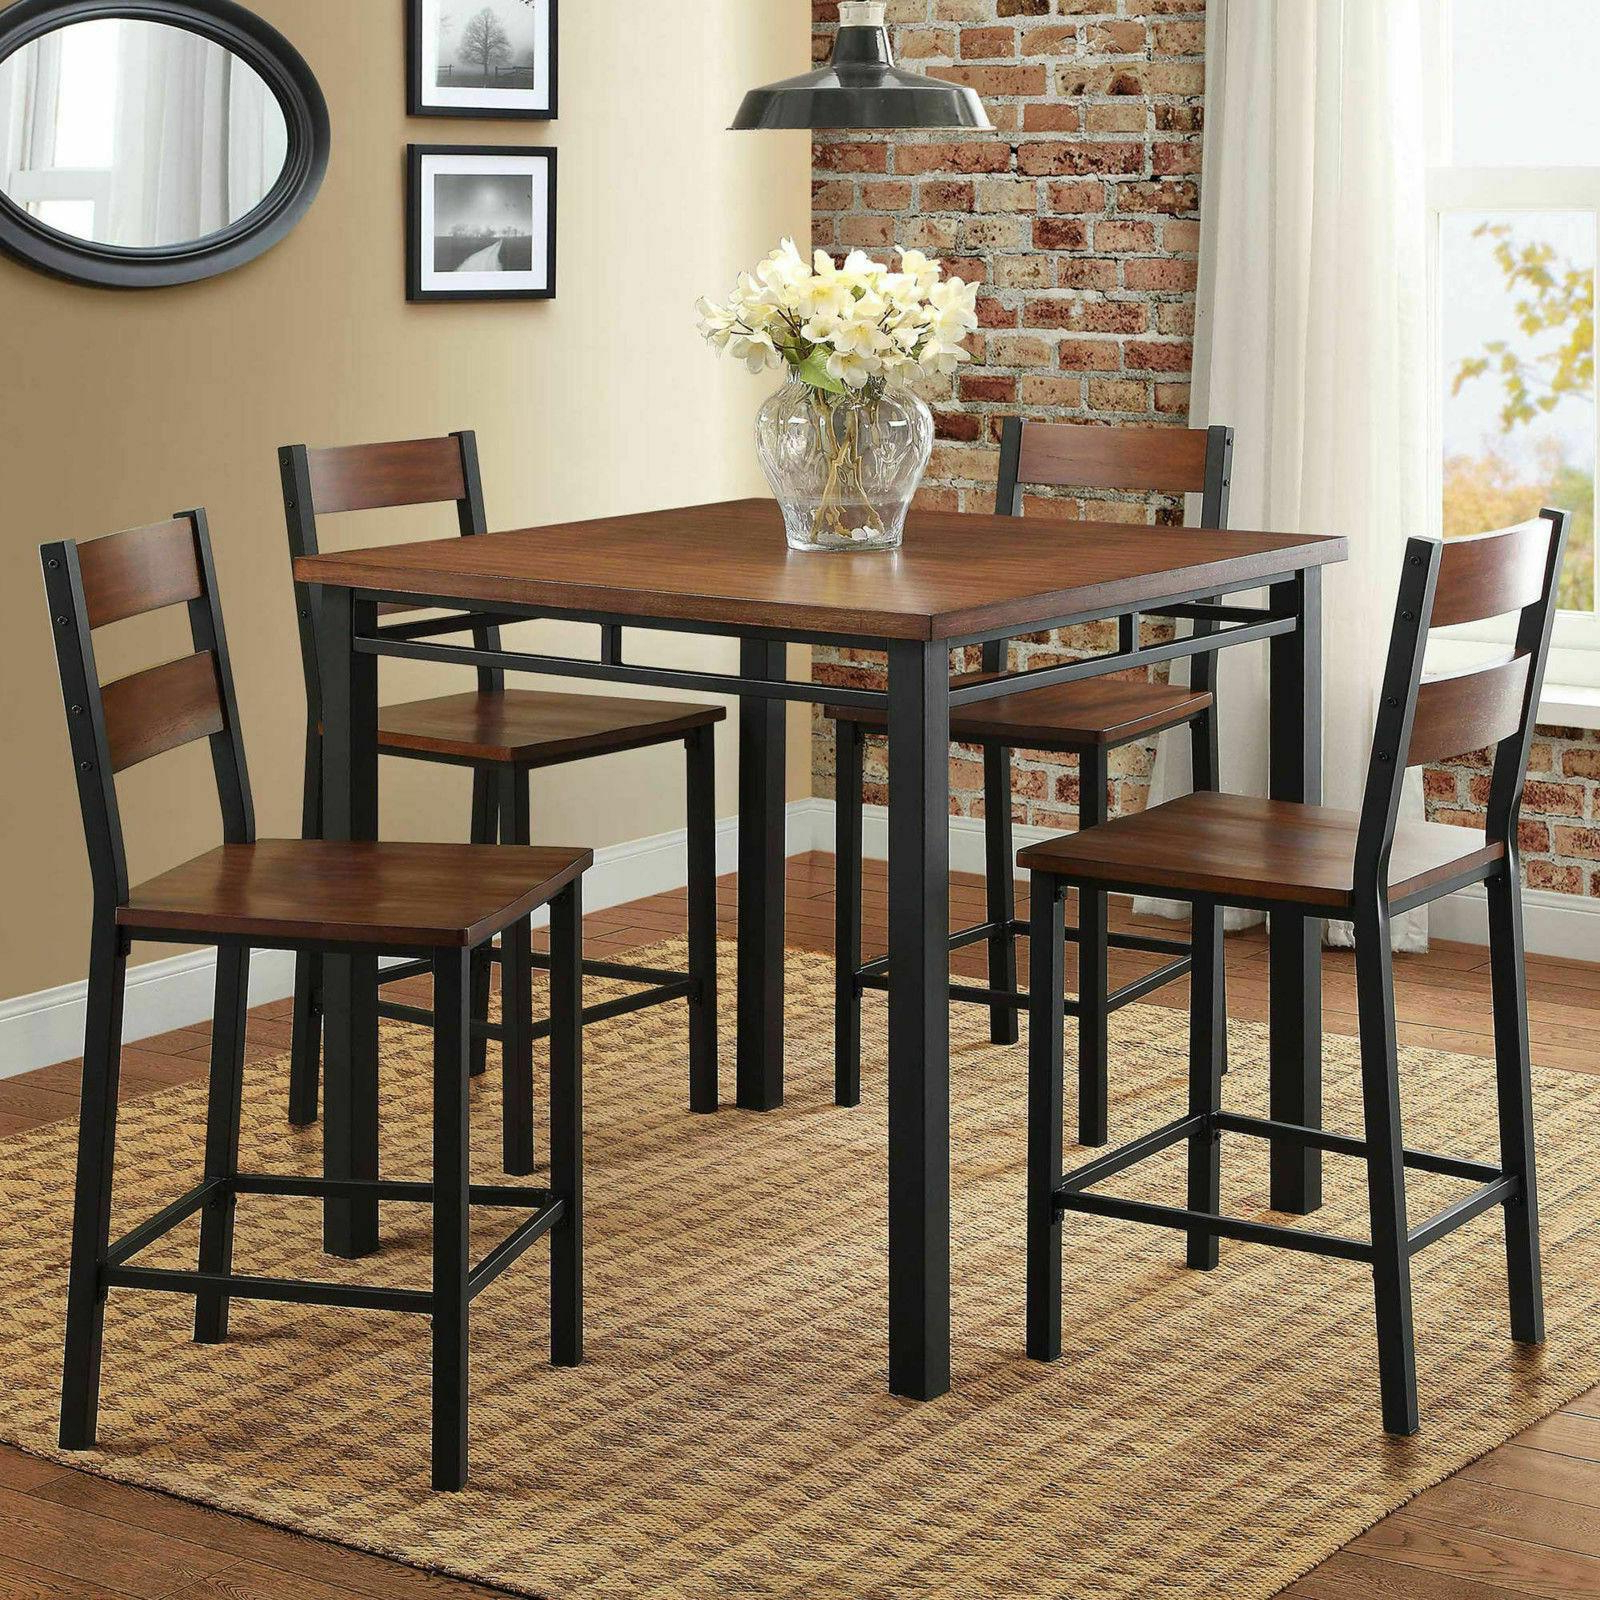 Dining Set Counter Height Table 5 Piece Regarding Preferred Noyes 5 Piece Dining Sets (View 3 of 20)